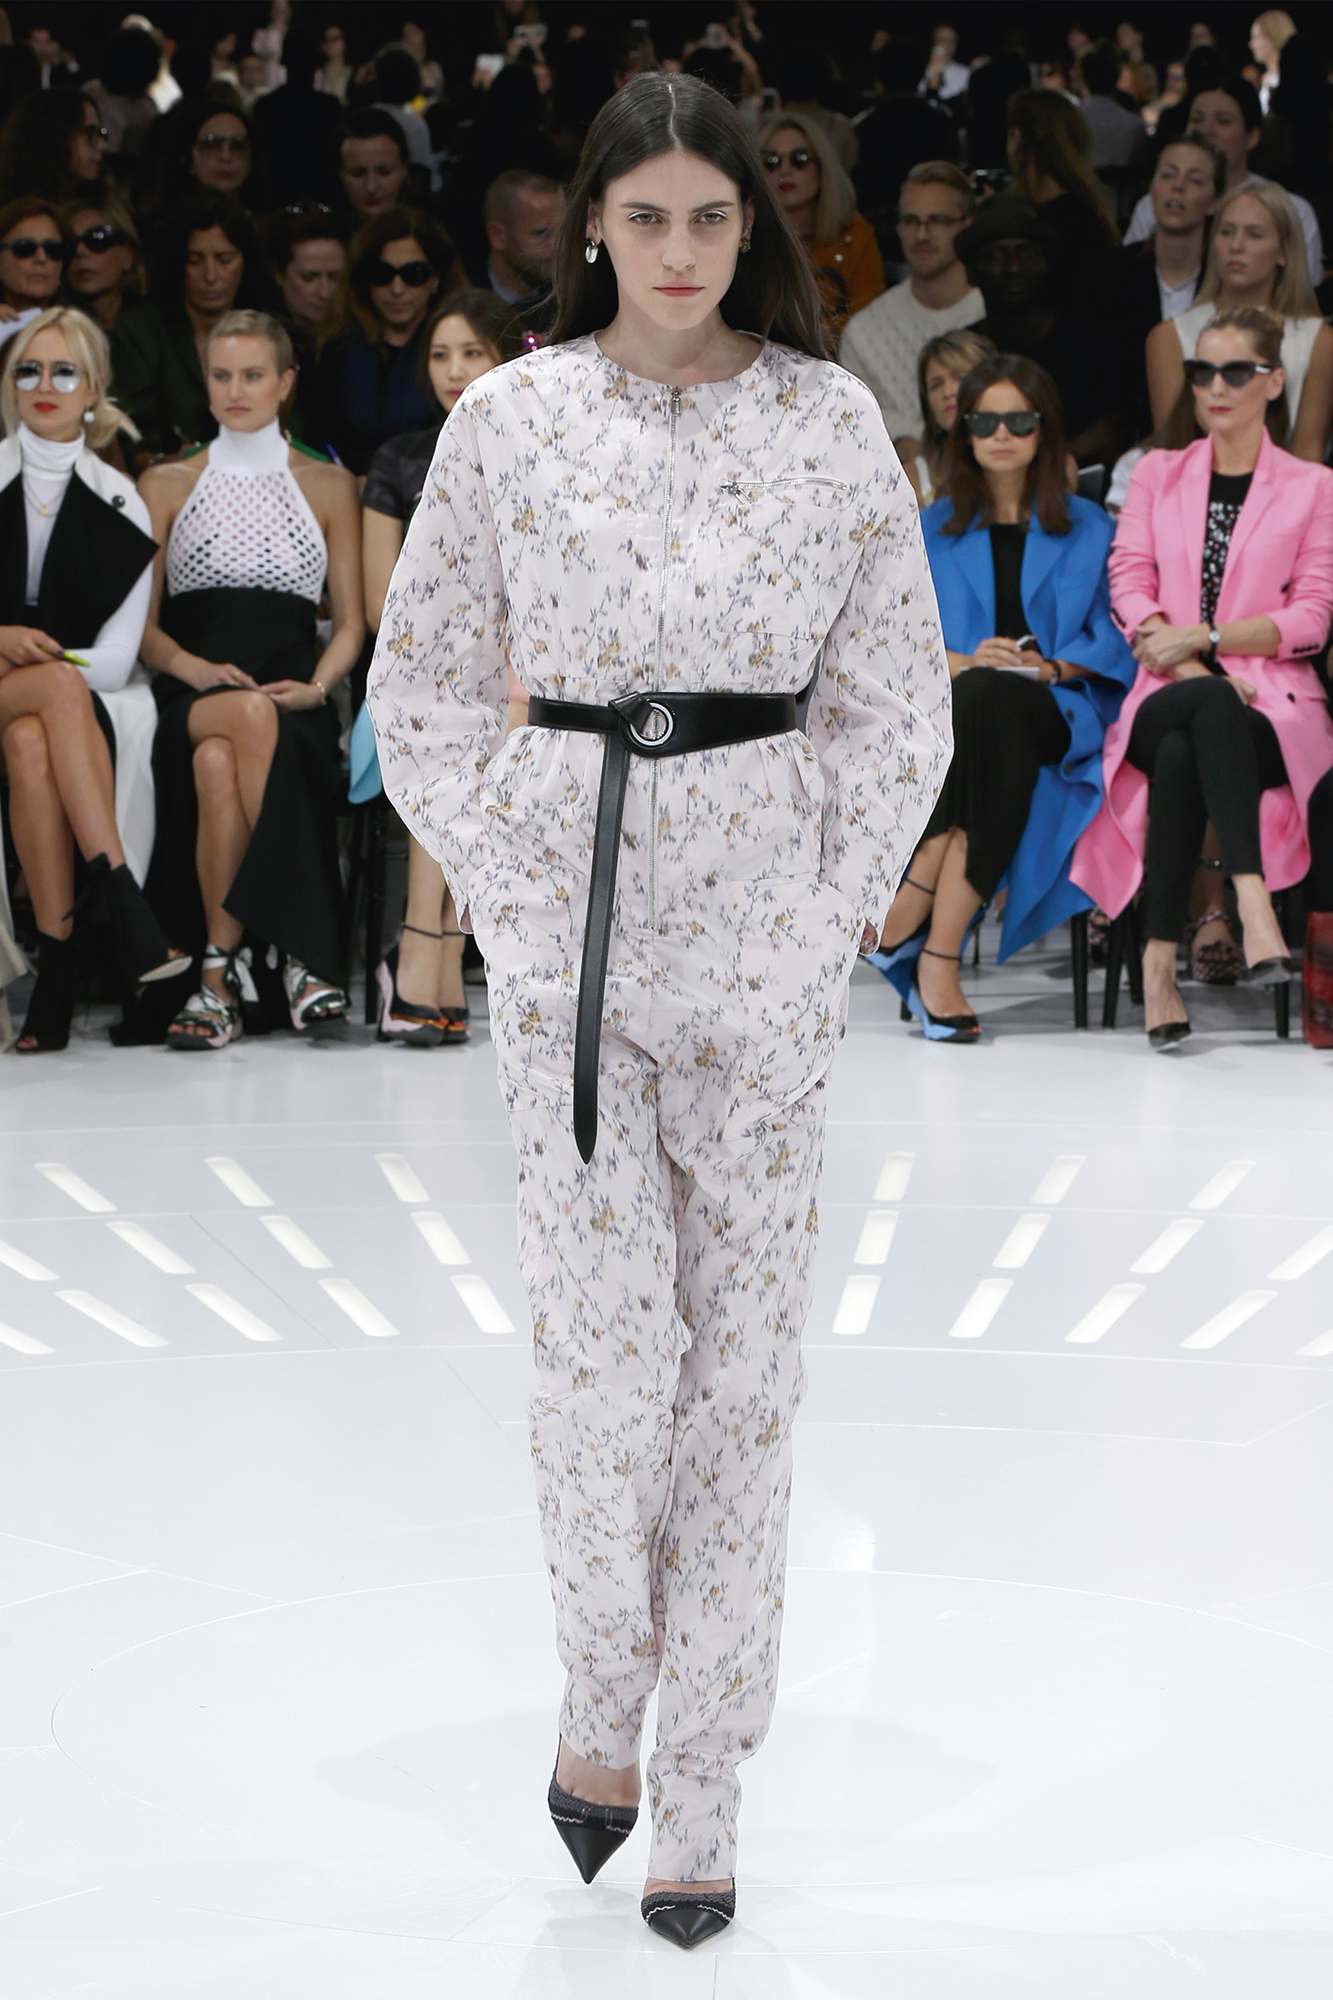 Christian Dior Haute Couture Spring-Summer Ready To Wear Dresses & Accessories Collection 2015-16 (18)